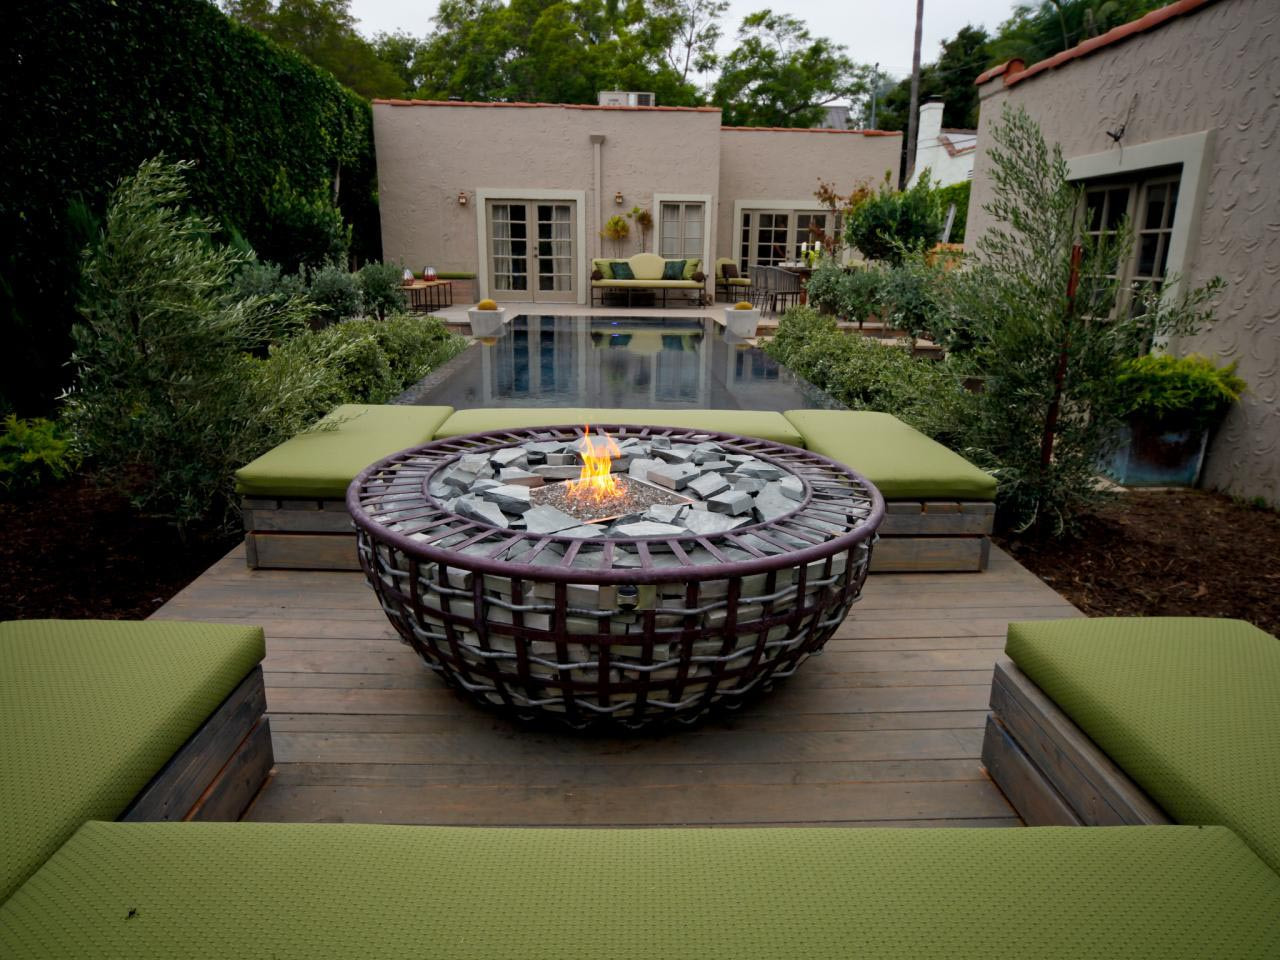 Sunken fire pit designs fire pit design ideas for Best fire pit design